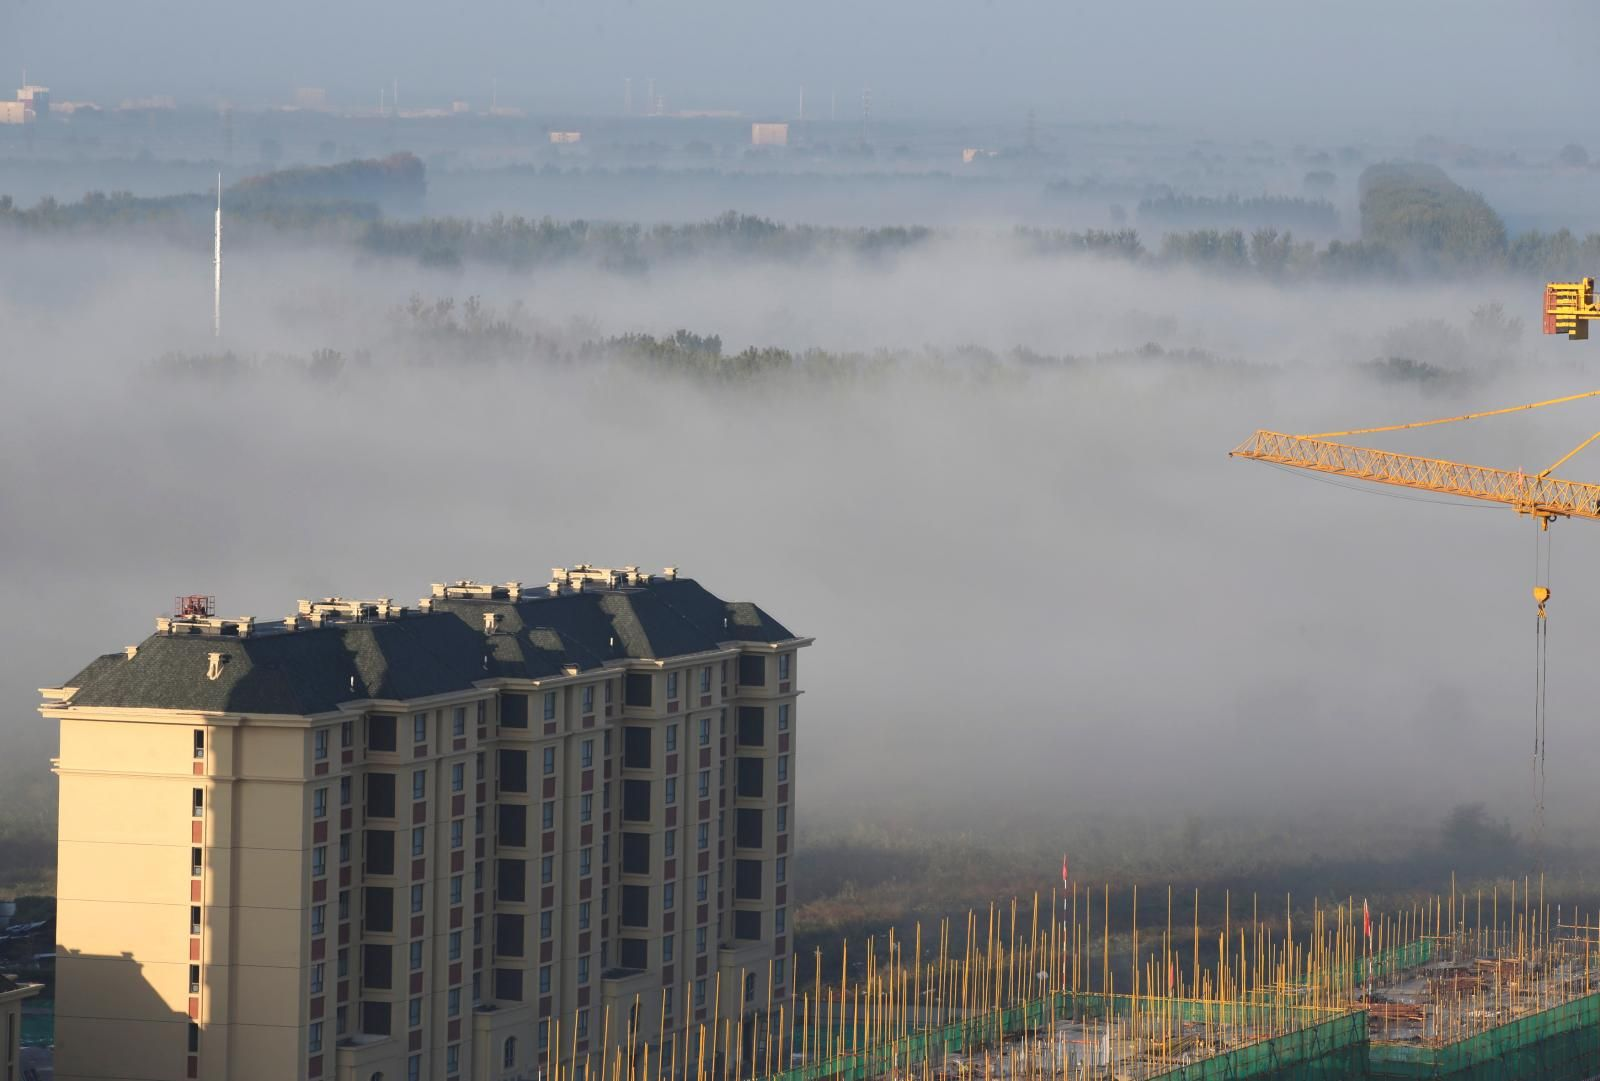 China's capital issues orange alert for smog